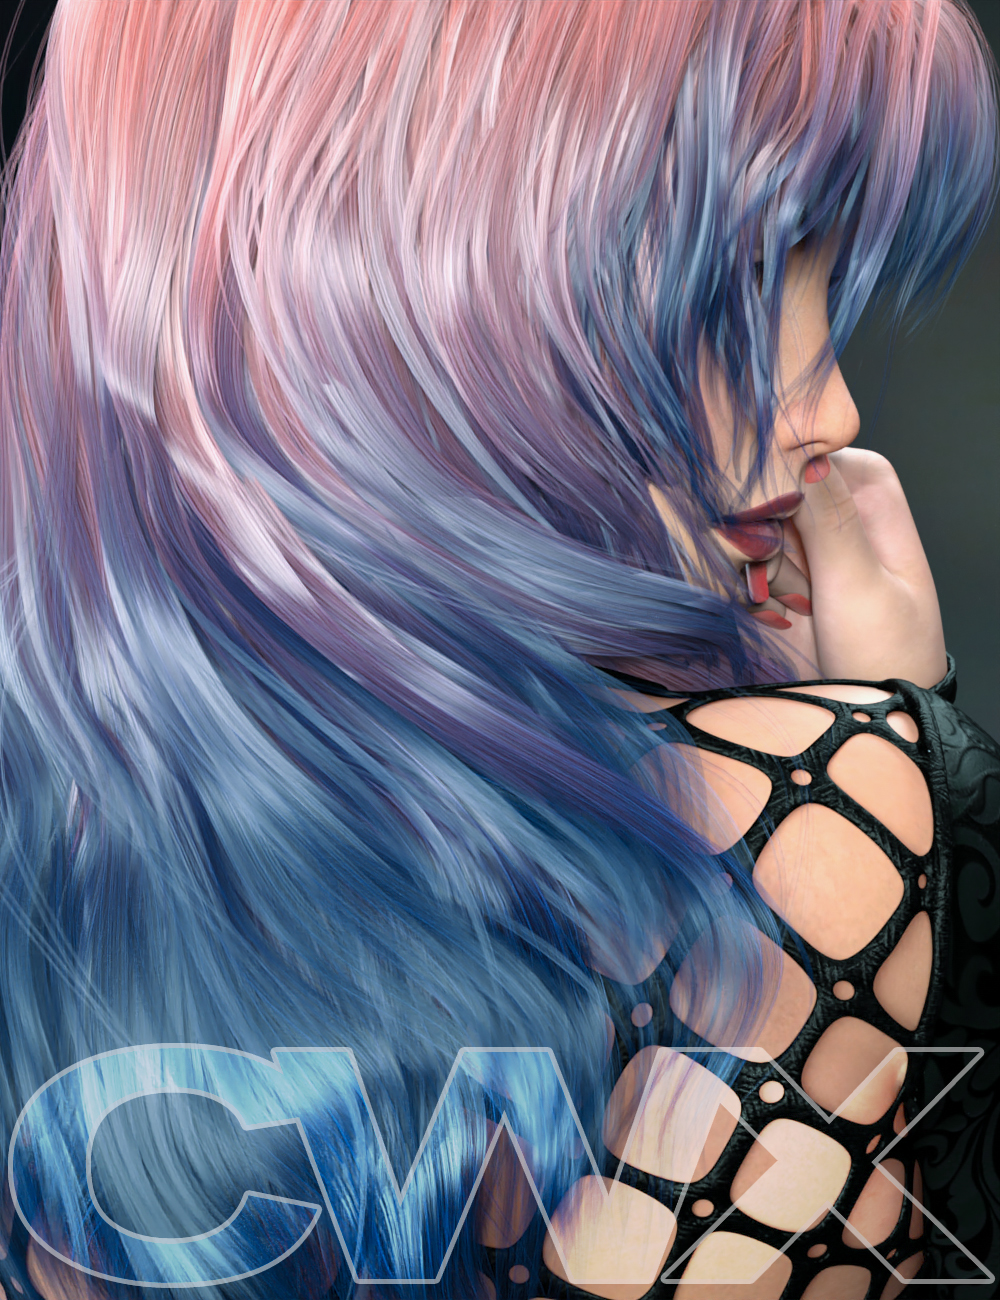 ColorWerks Extreme:  Hair Texture Blending for Iray and dForce Hair by: SloshWerks, 3D Models by Daz 3D